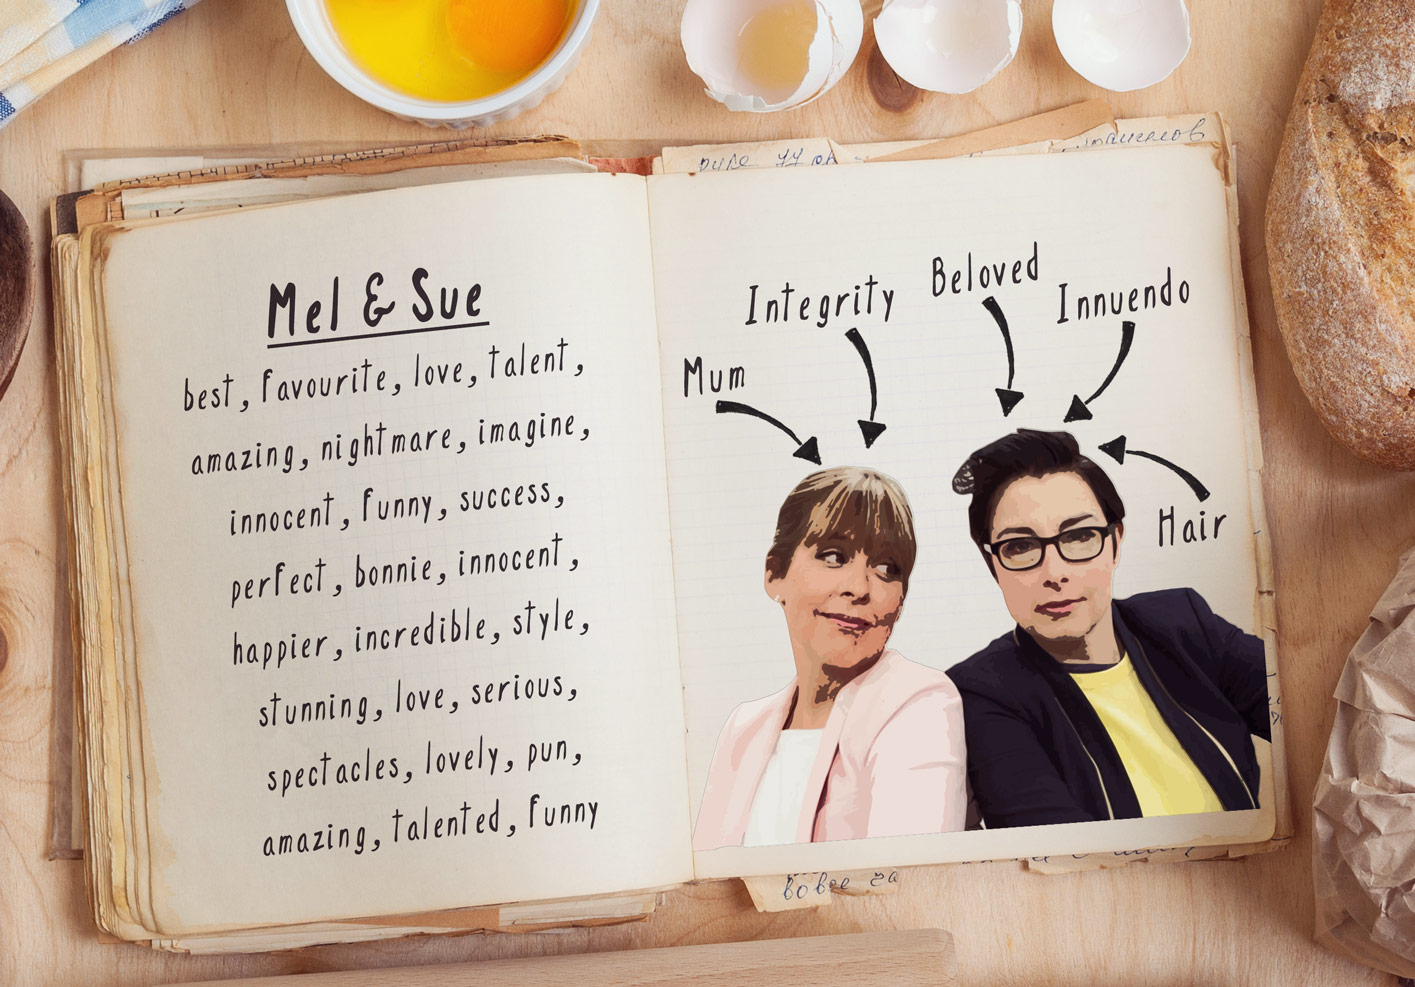 gbbo_book_melsue